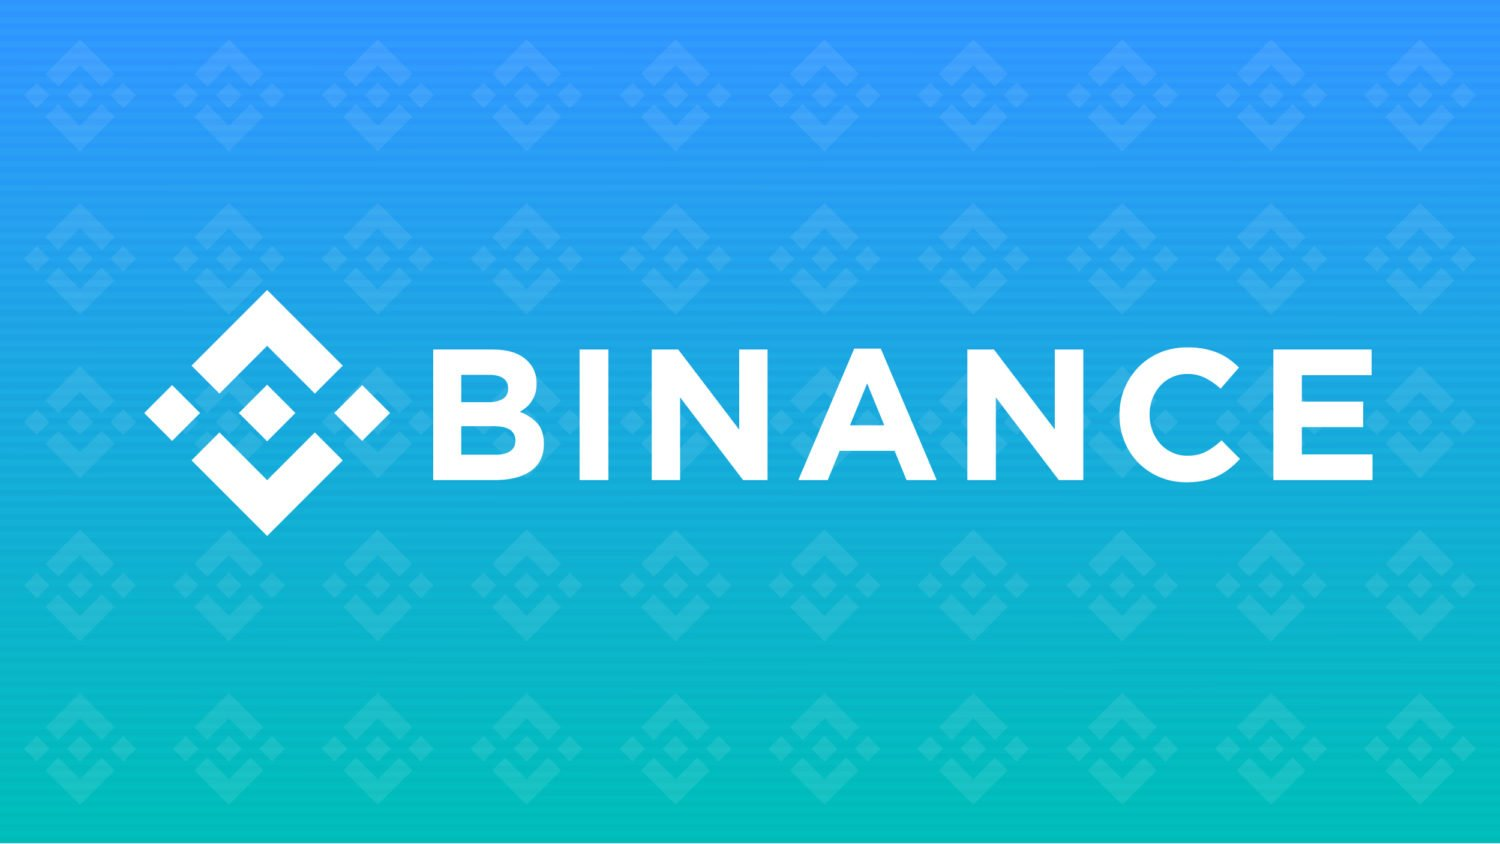 US officials now investigating Binance for potential insider trading, market manipulation: report